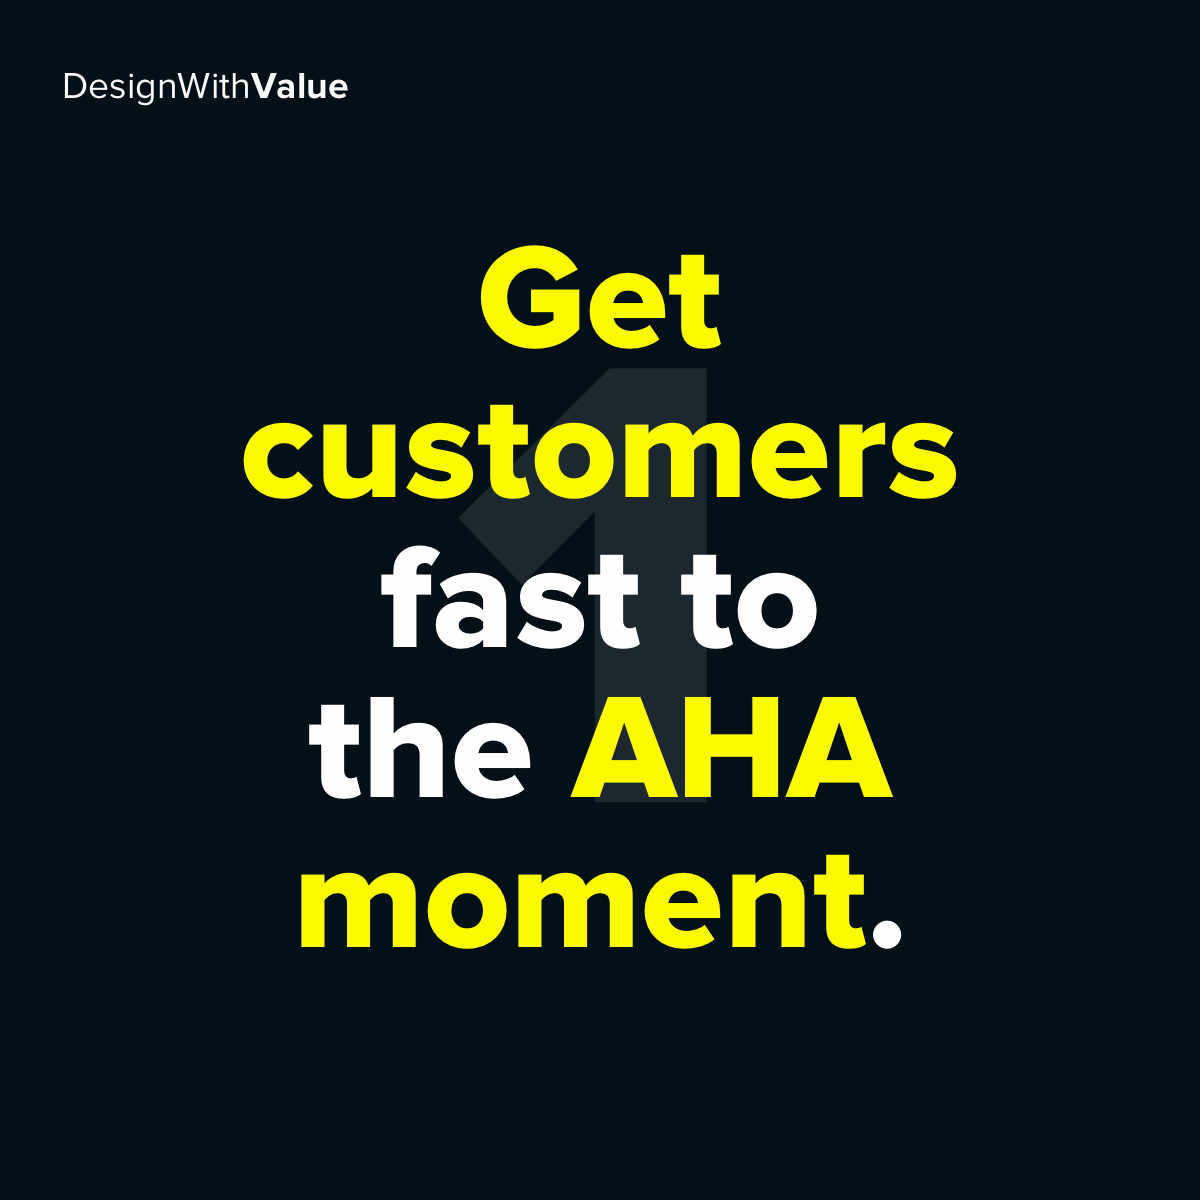 First get customers fast to the AHA moment.